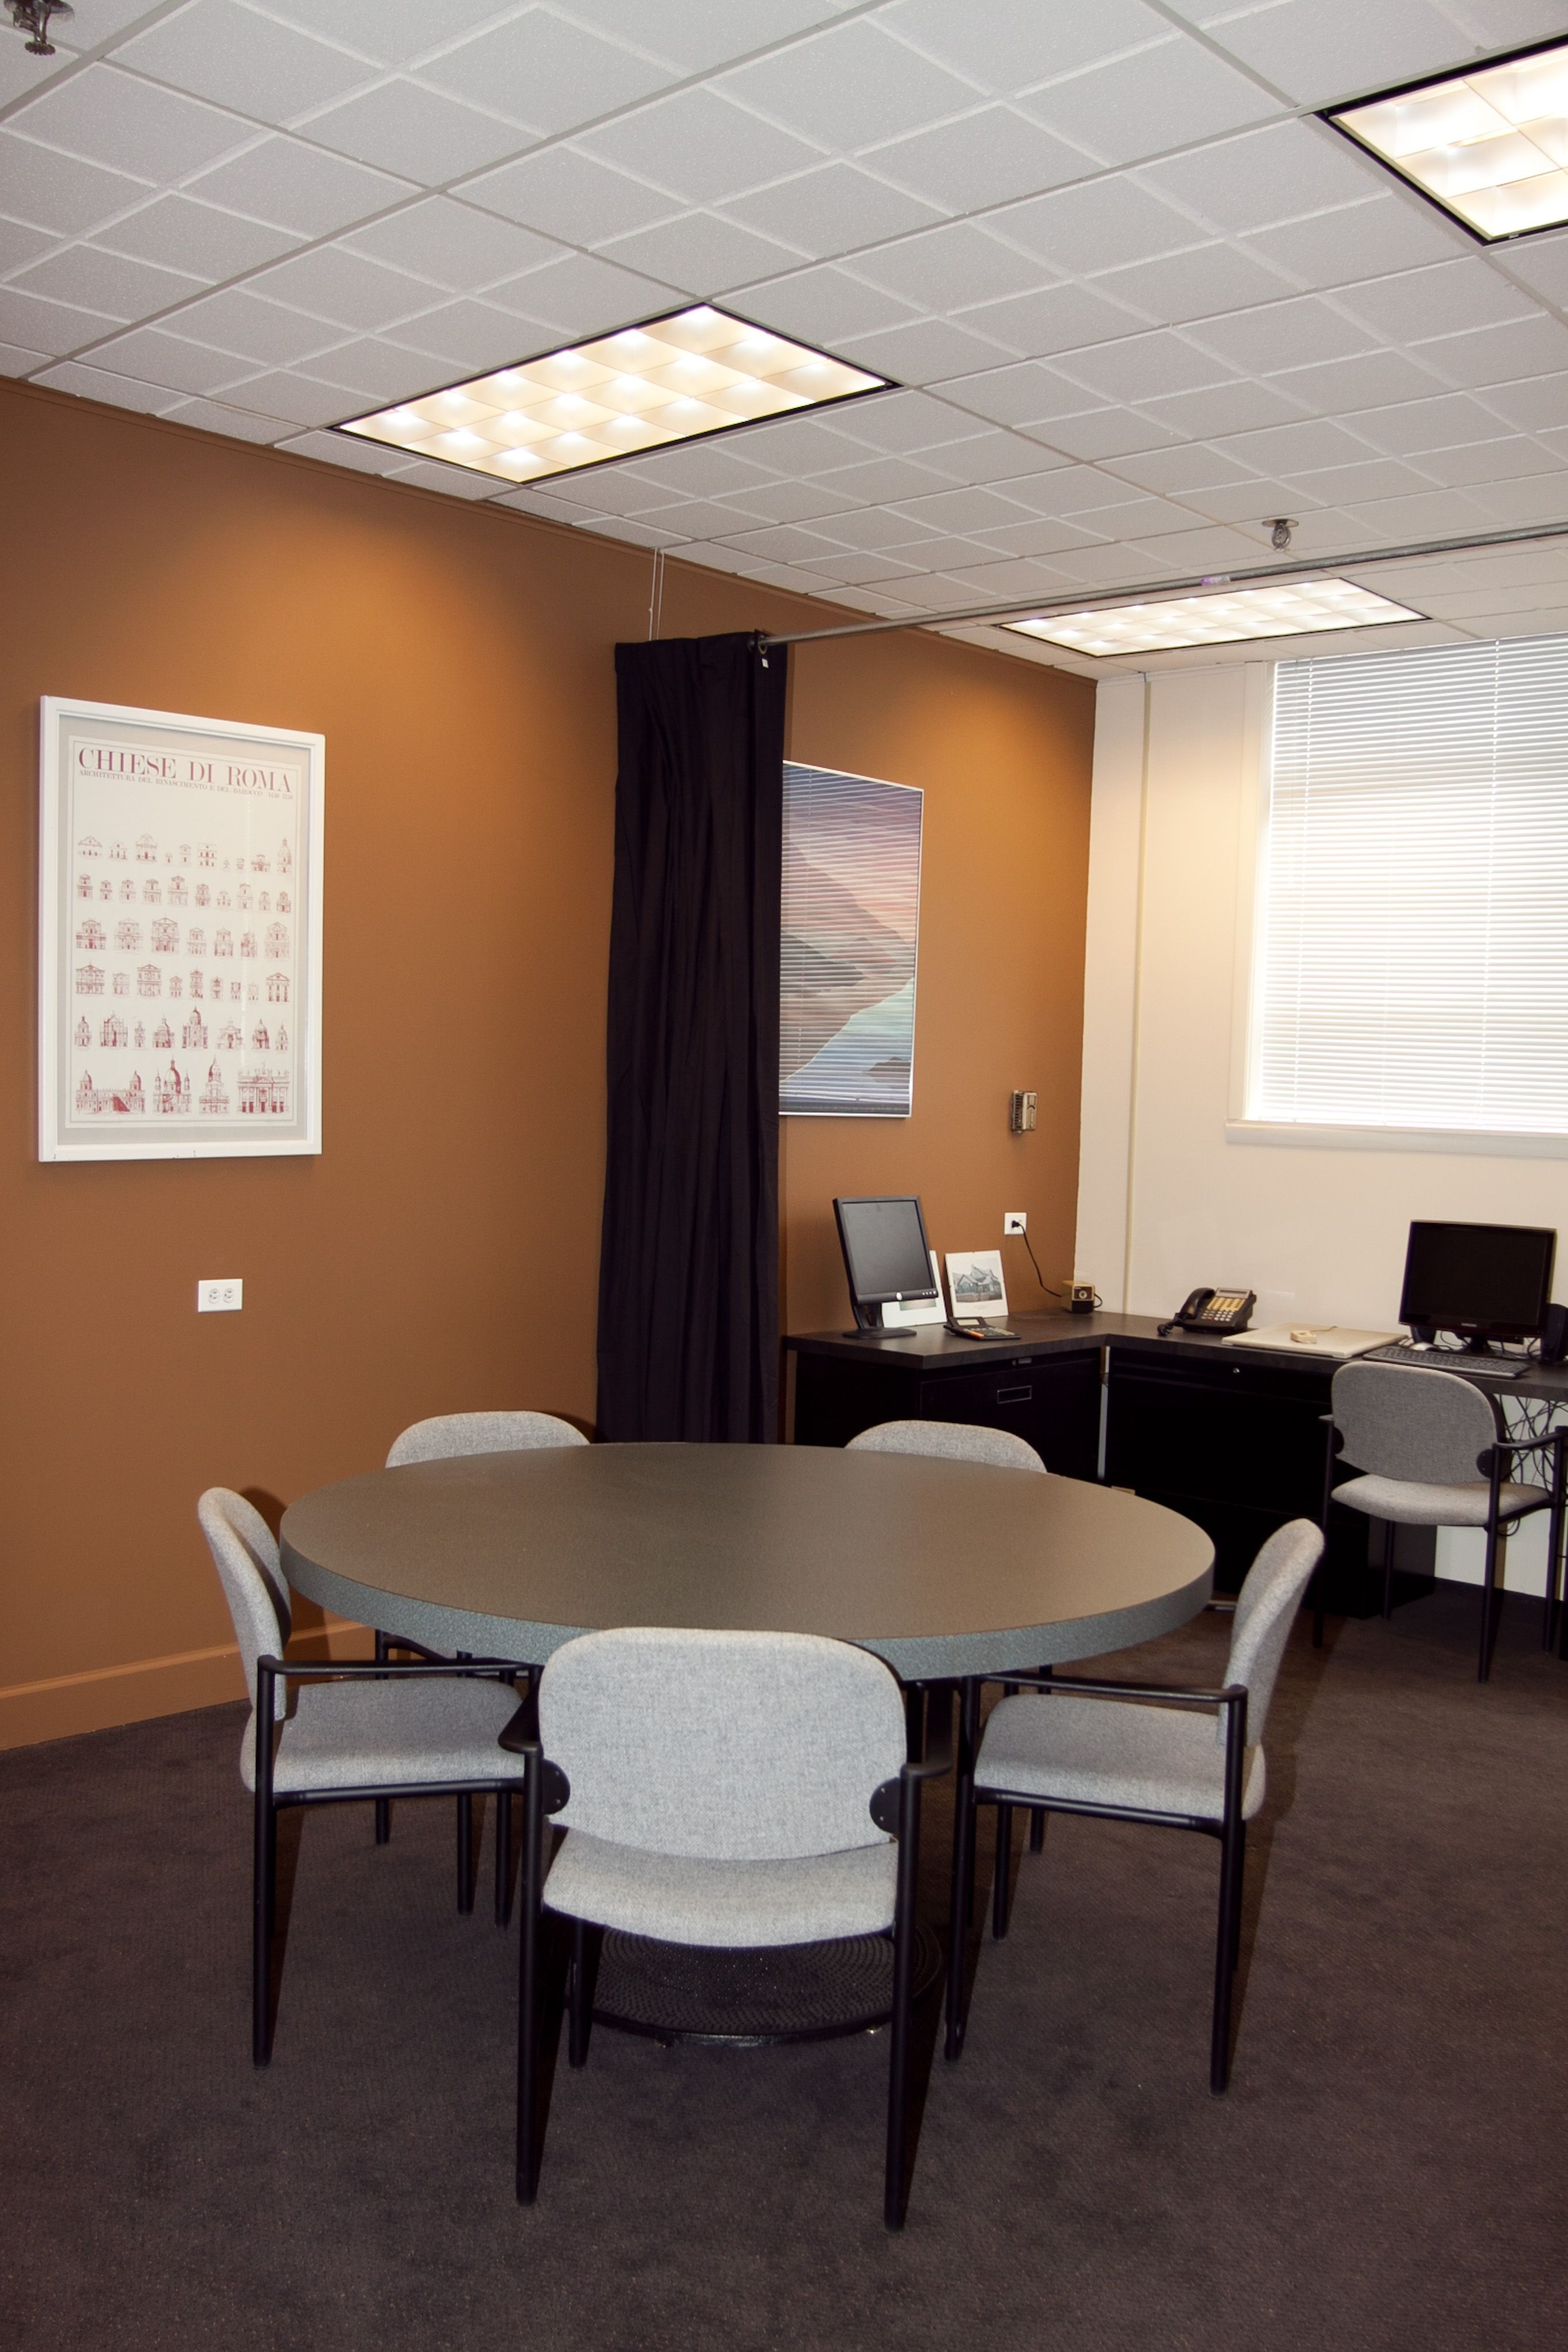 Office room divider kits are the best way to separate and create